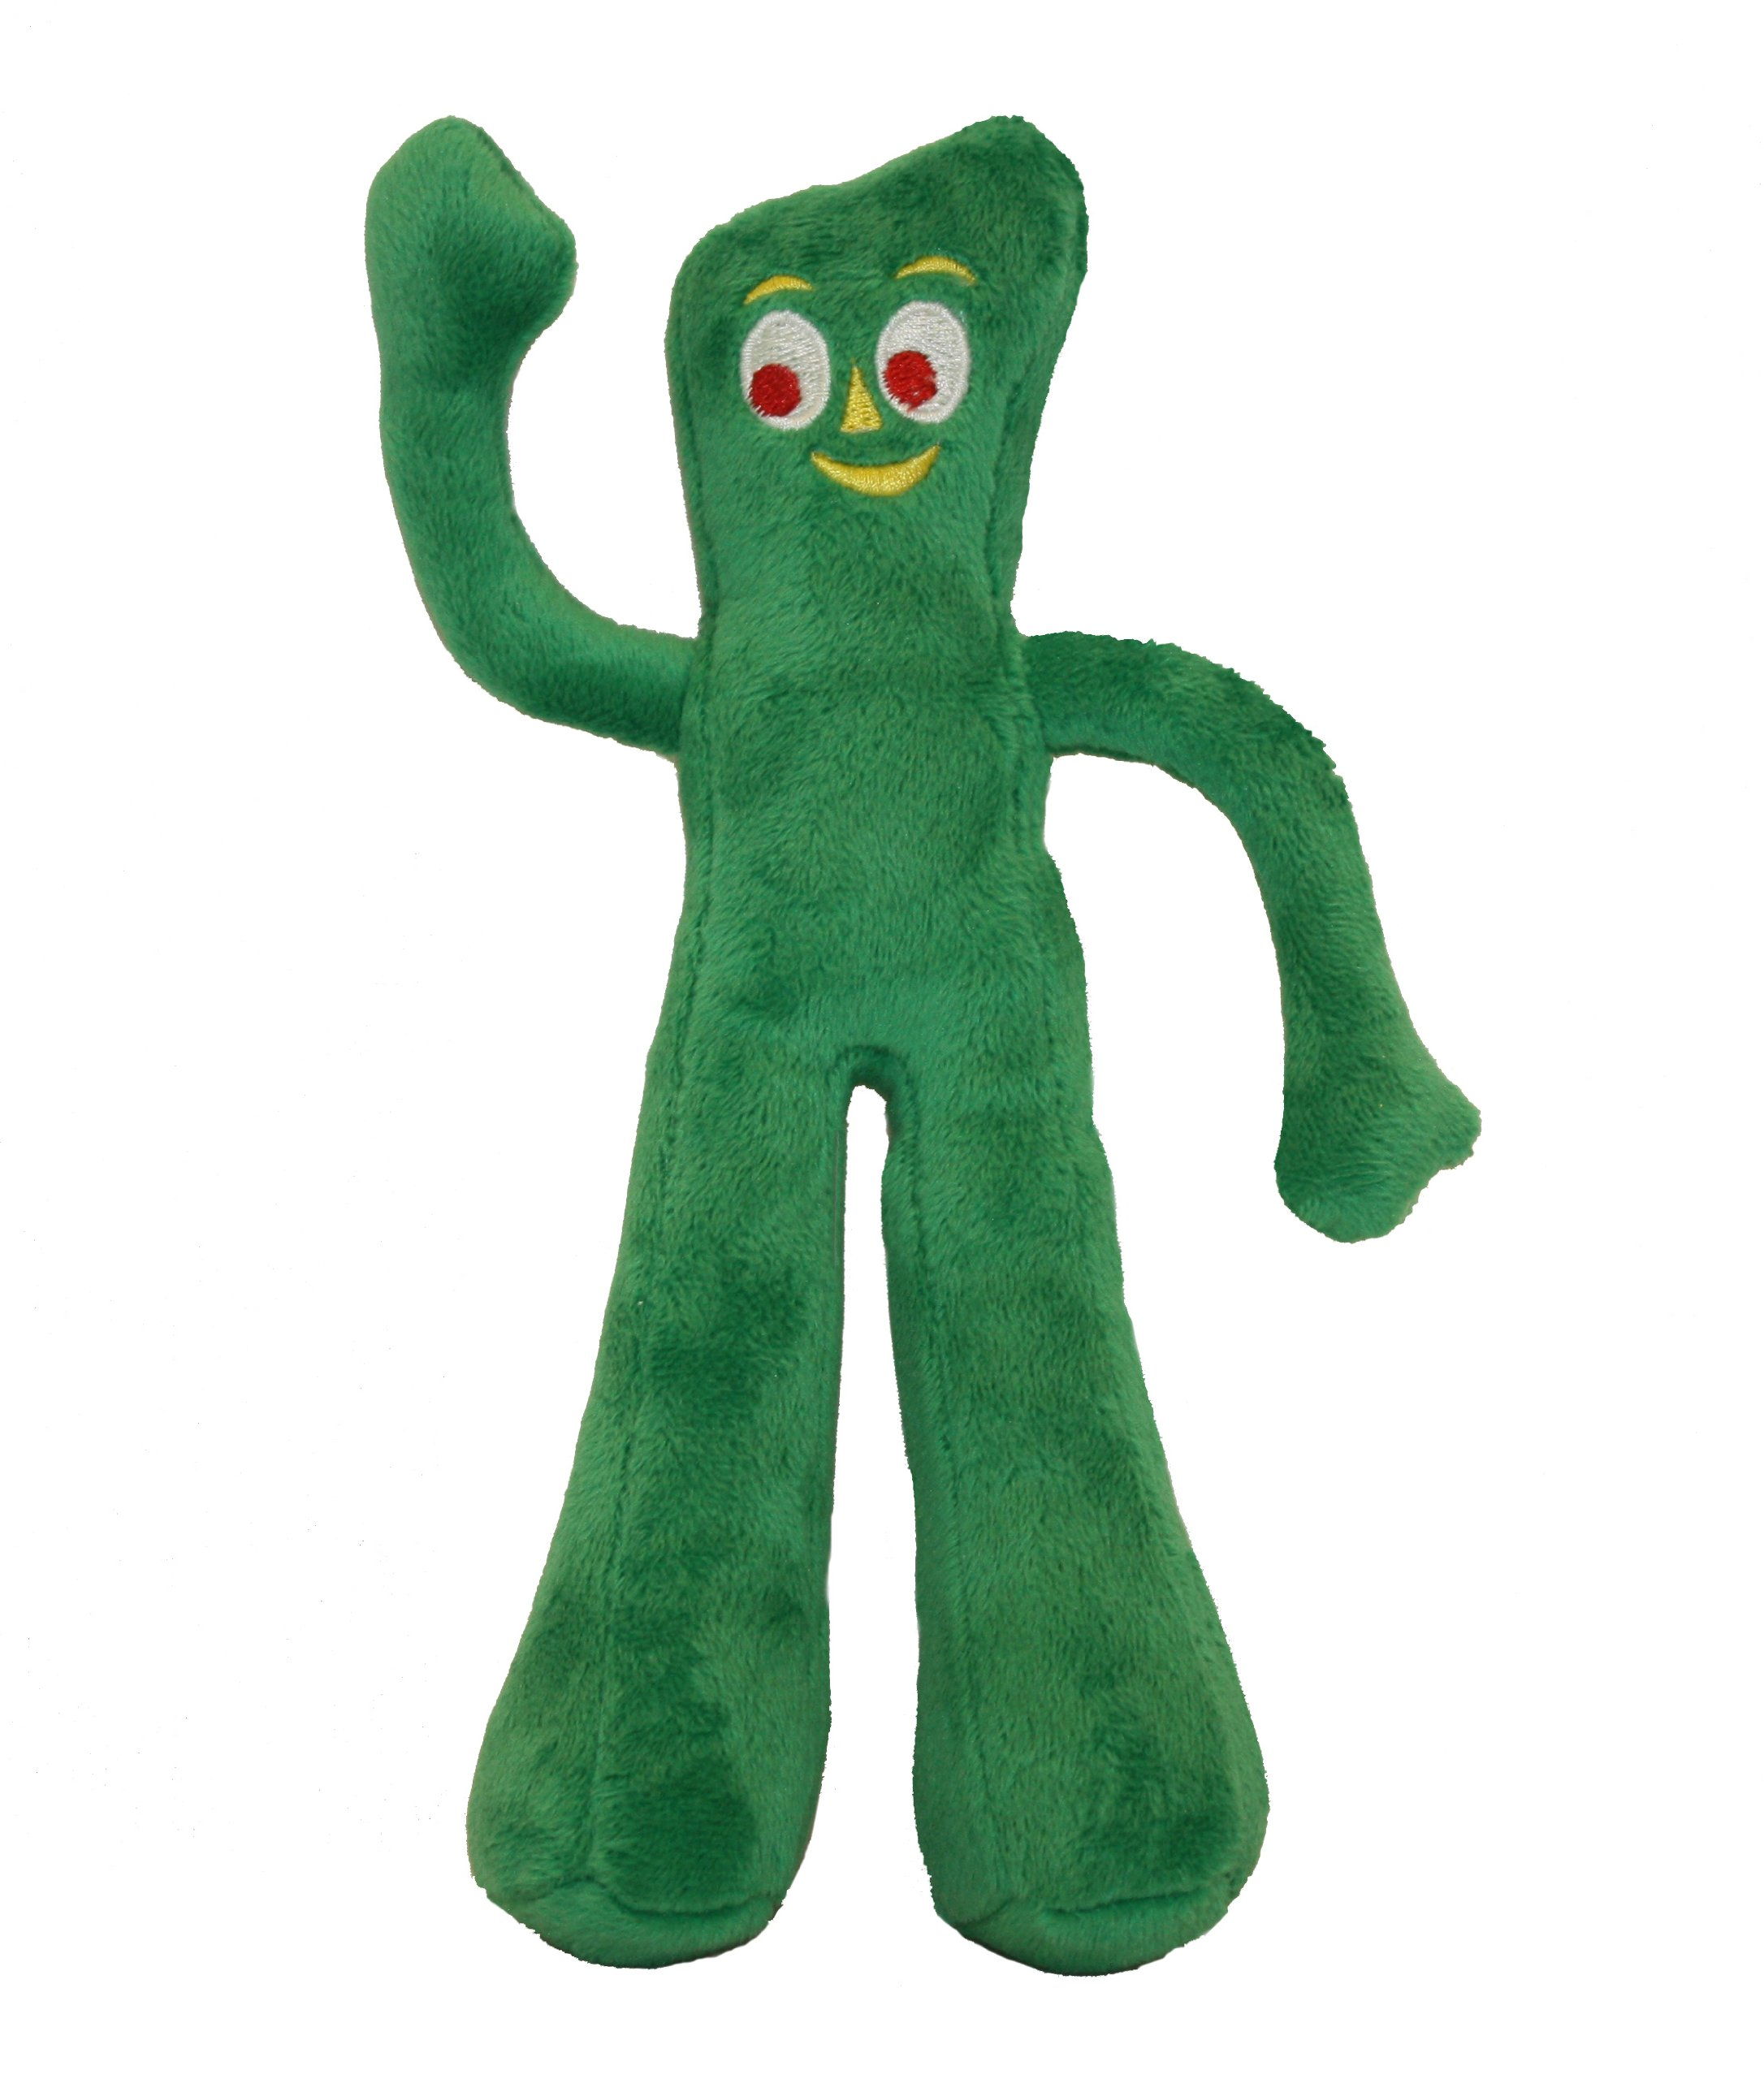 MultiPet Gumby Dog Toy 8 1/2